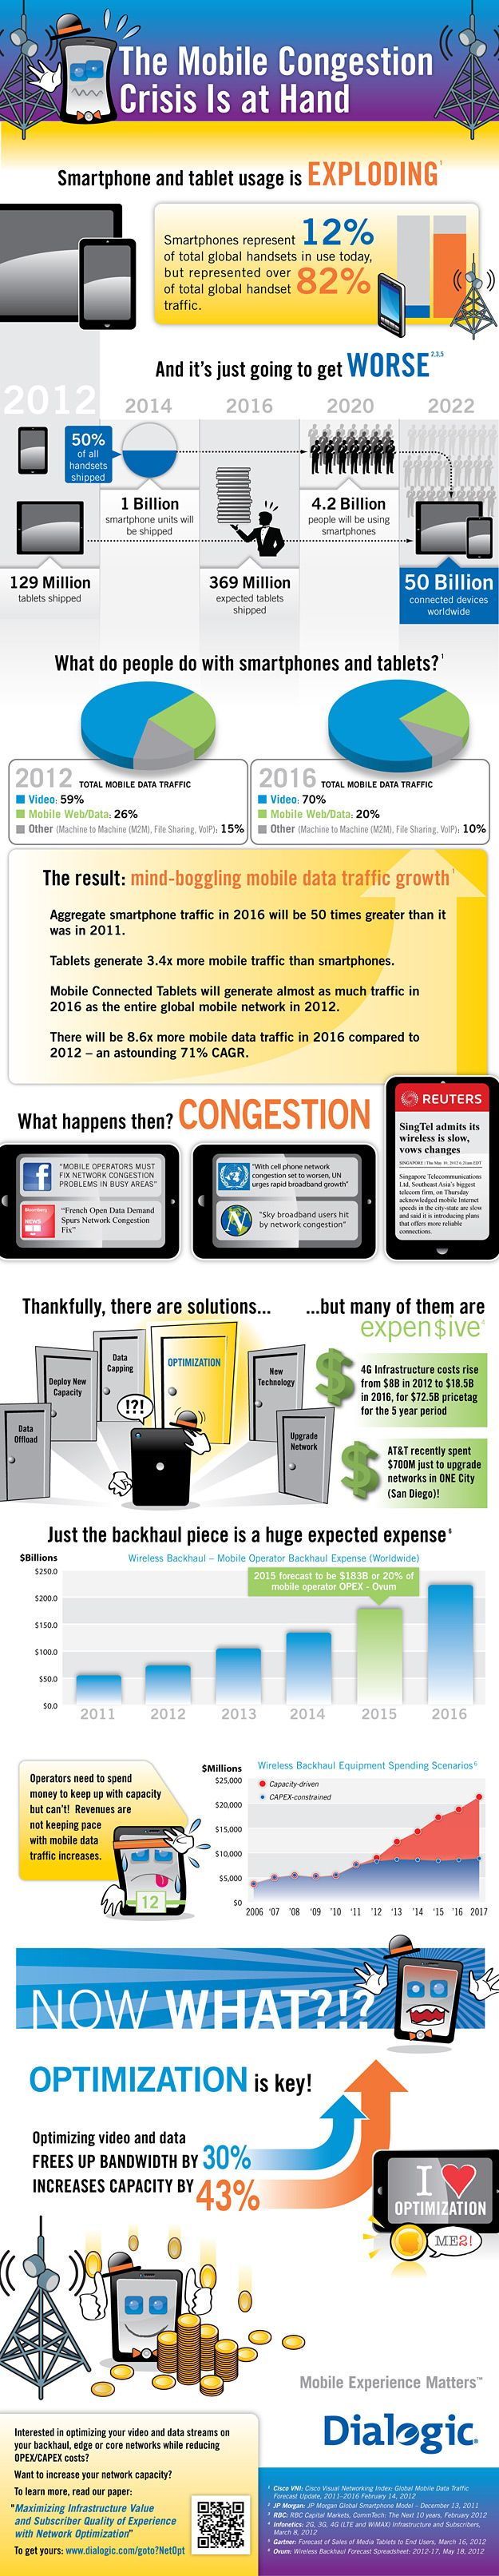 Mobile Network Congestion Infographic